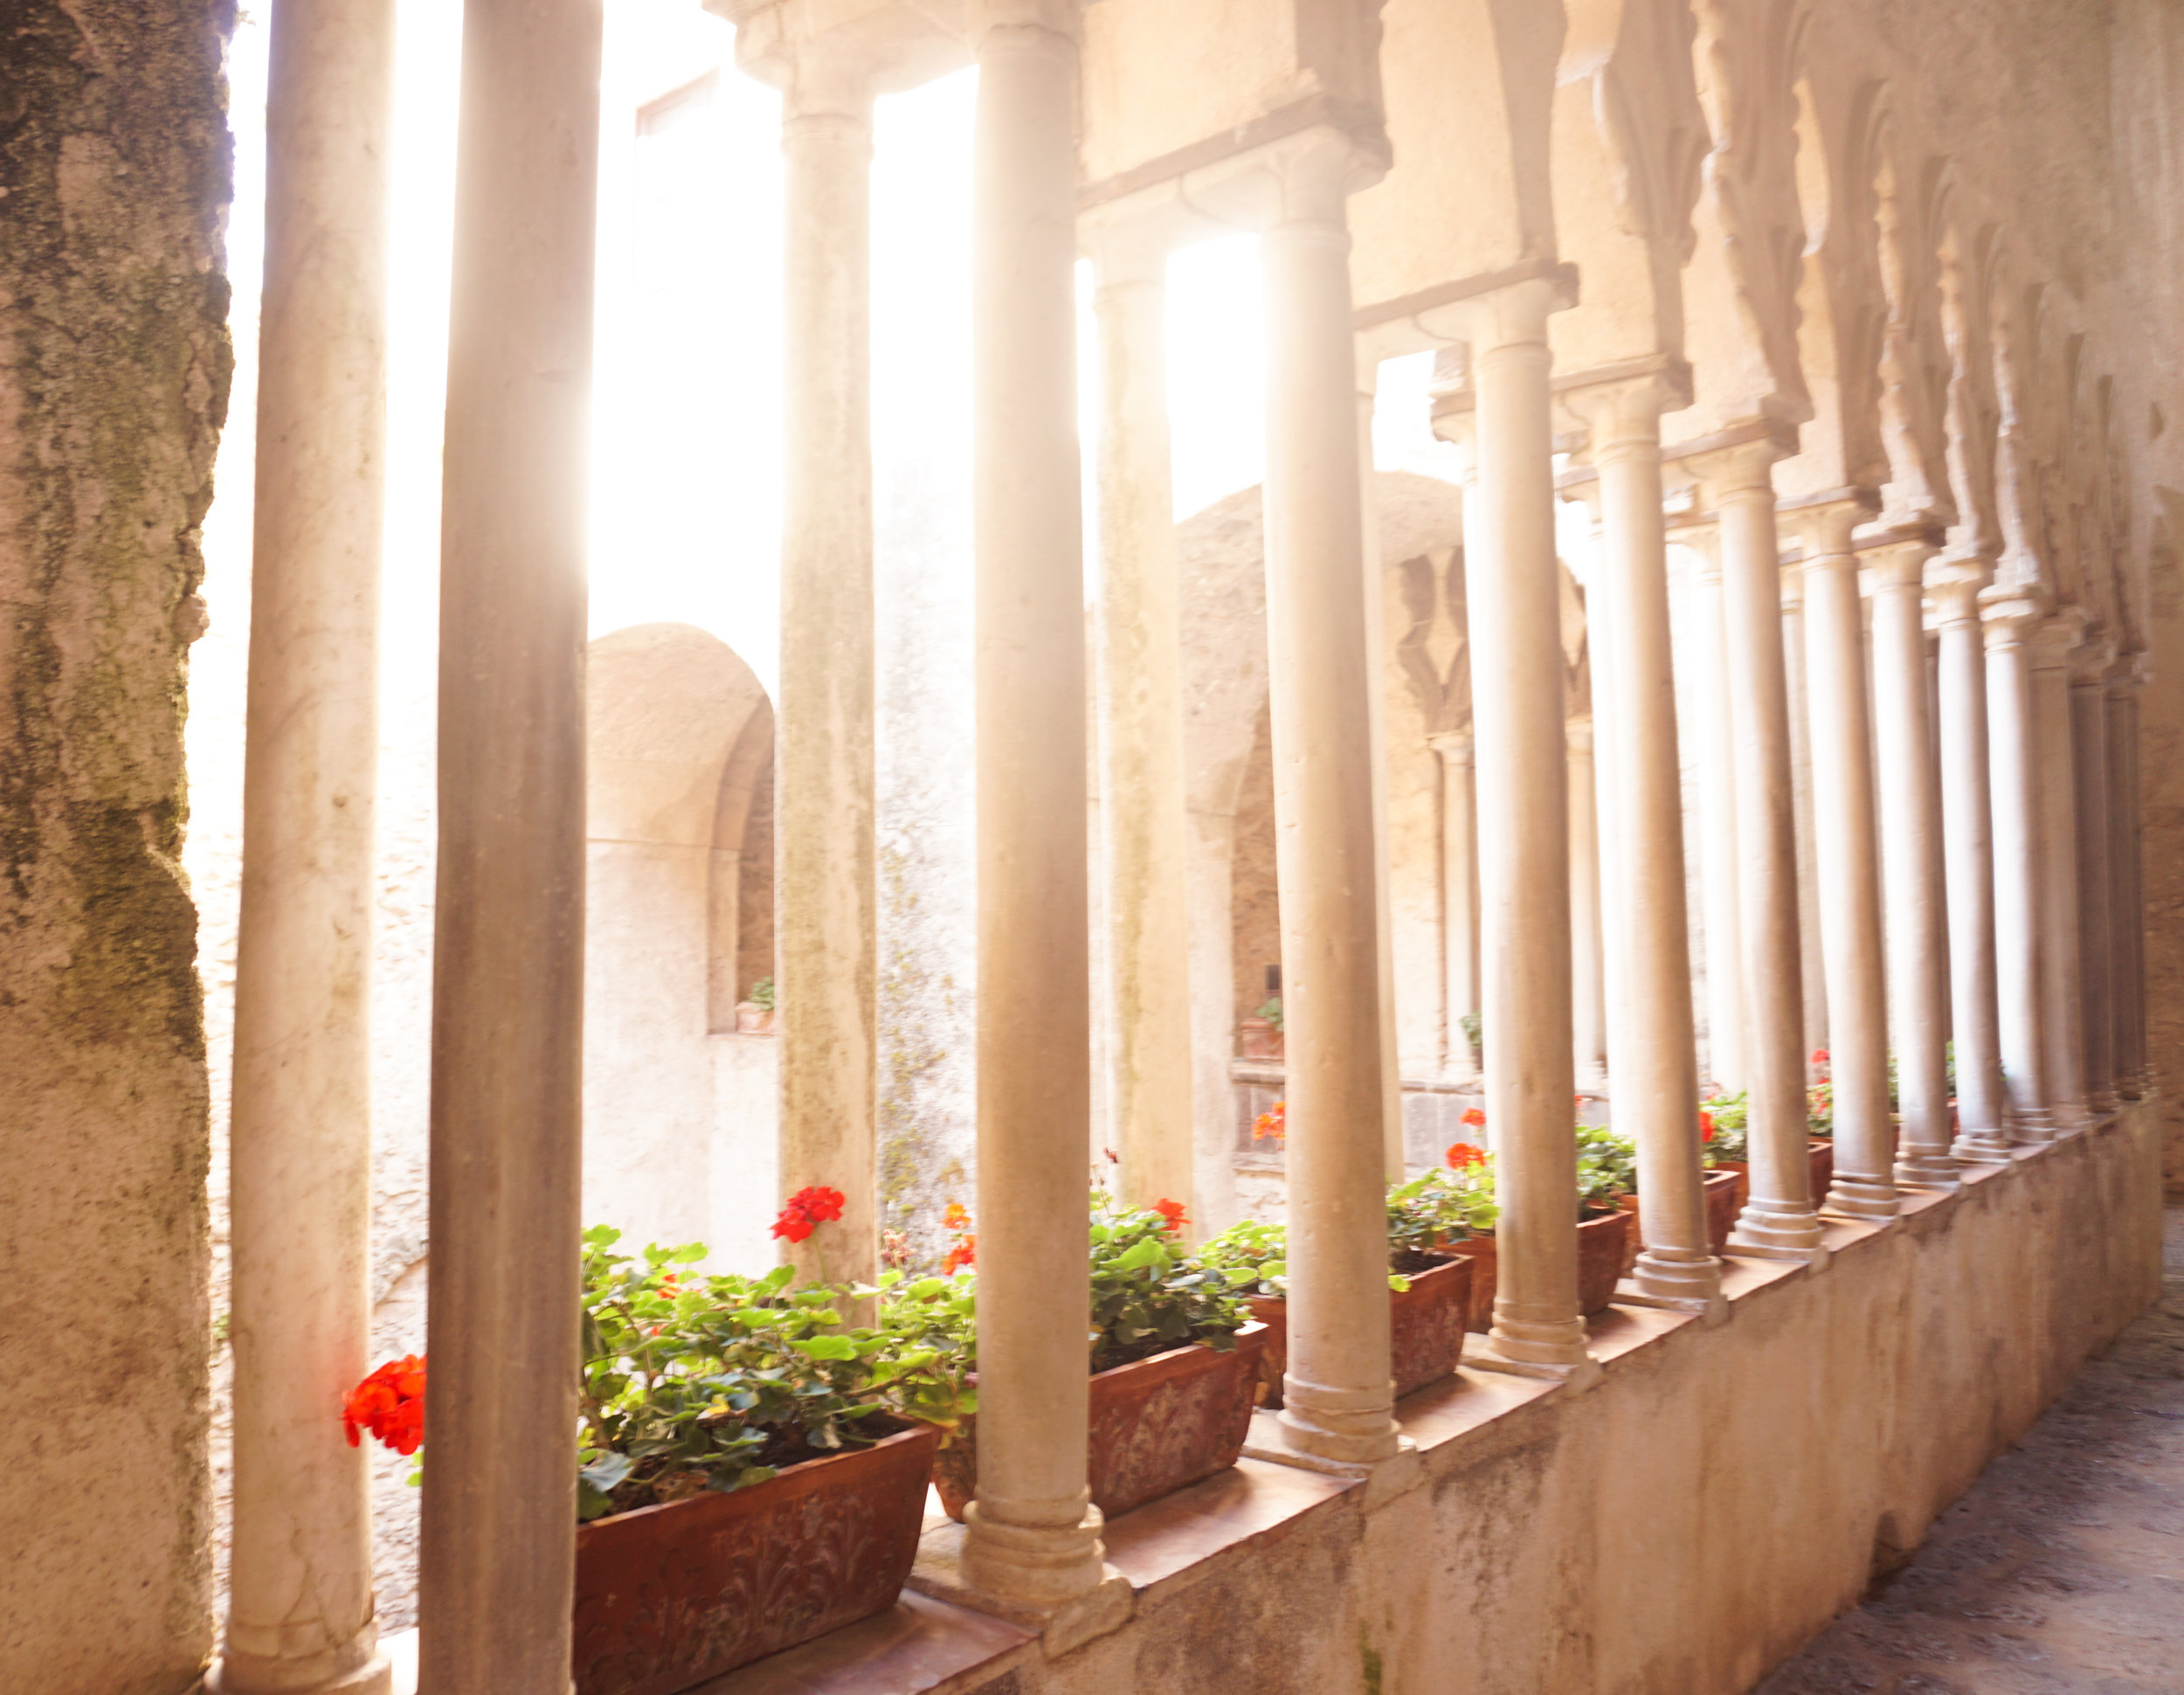 BEAUTIFUL LIGHT AT villa rufulo, located in the historic center of ravello